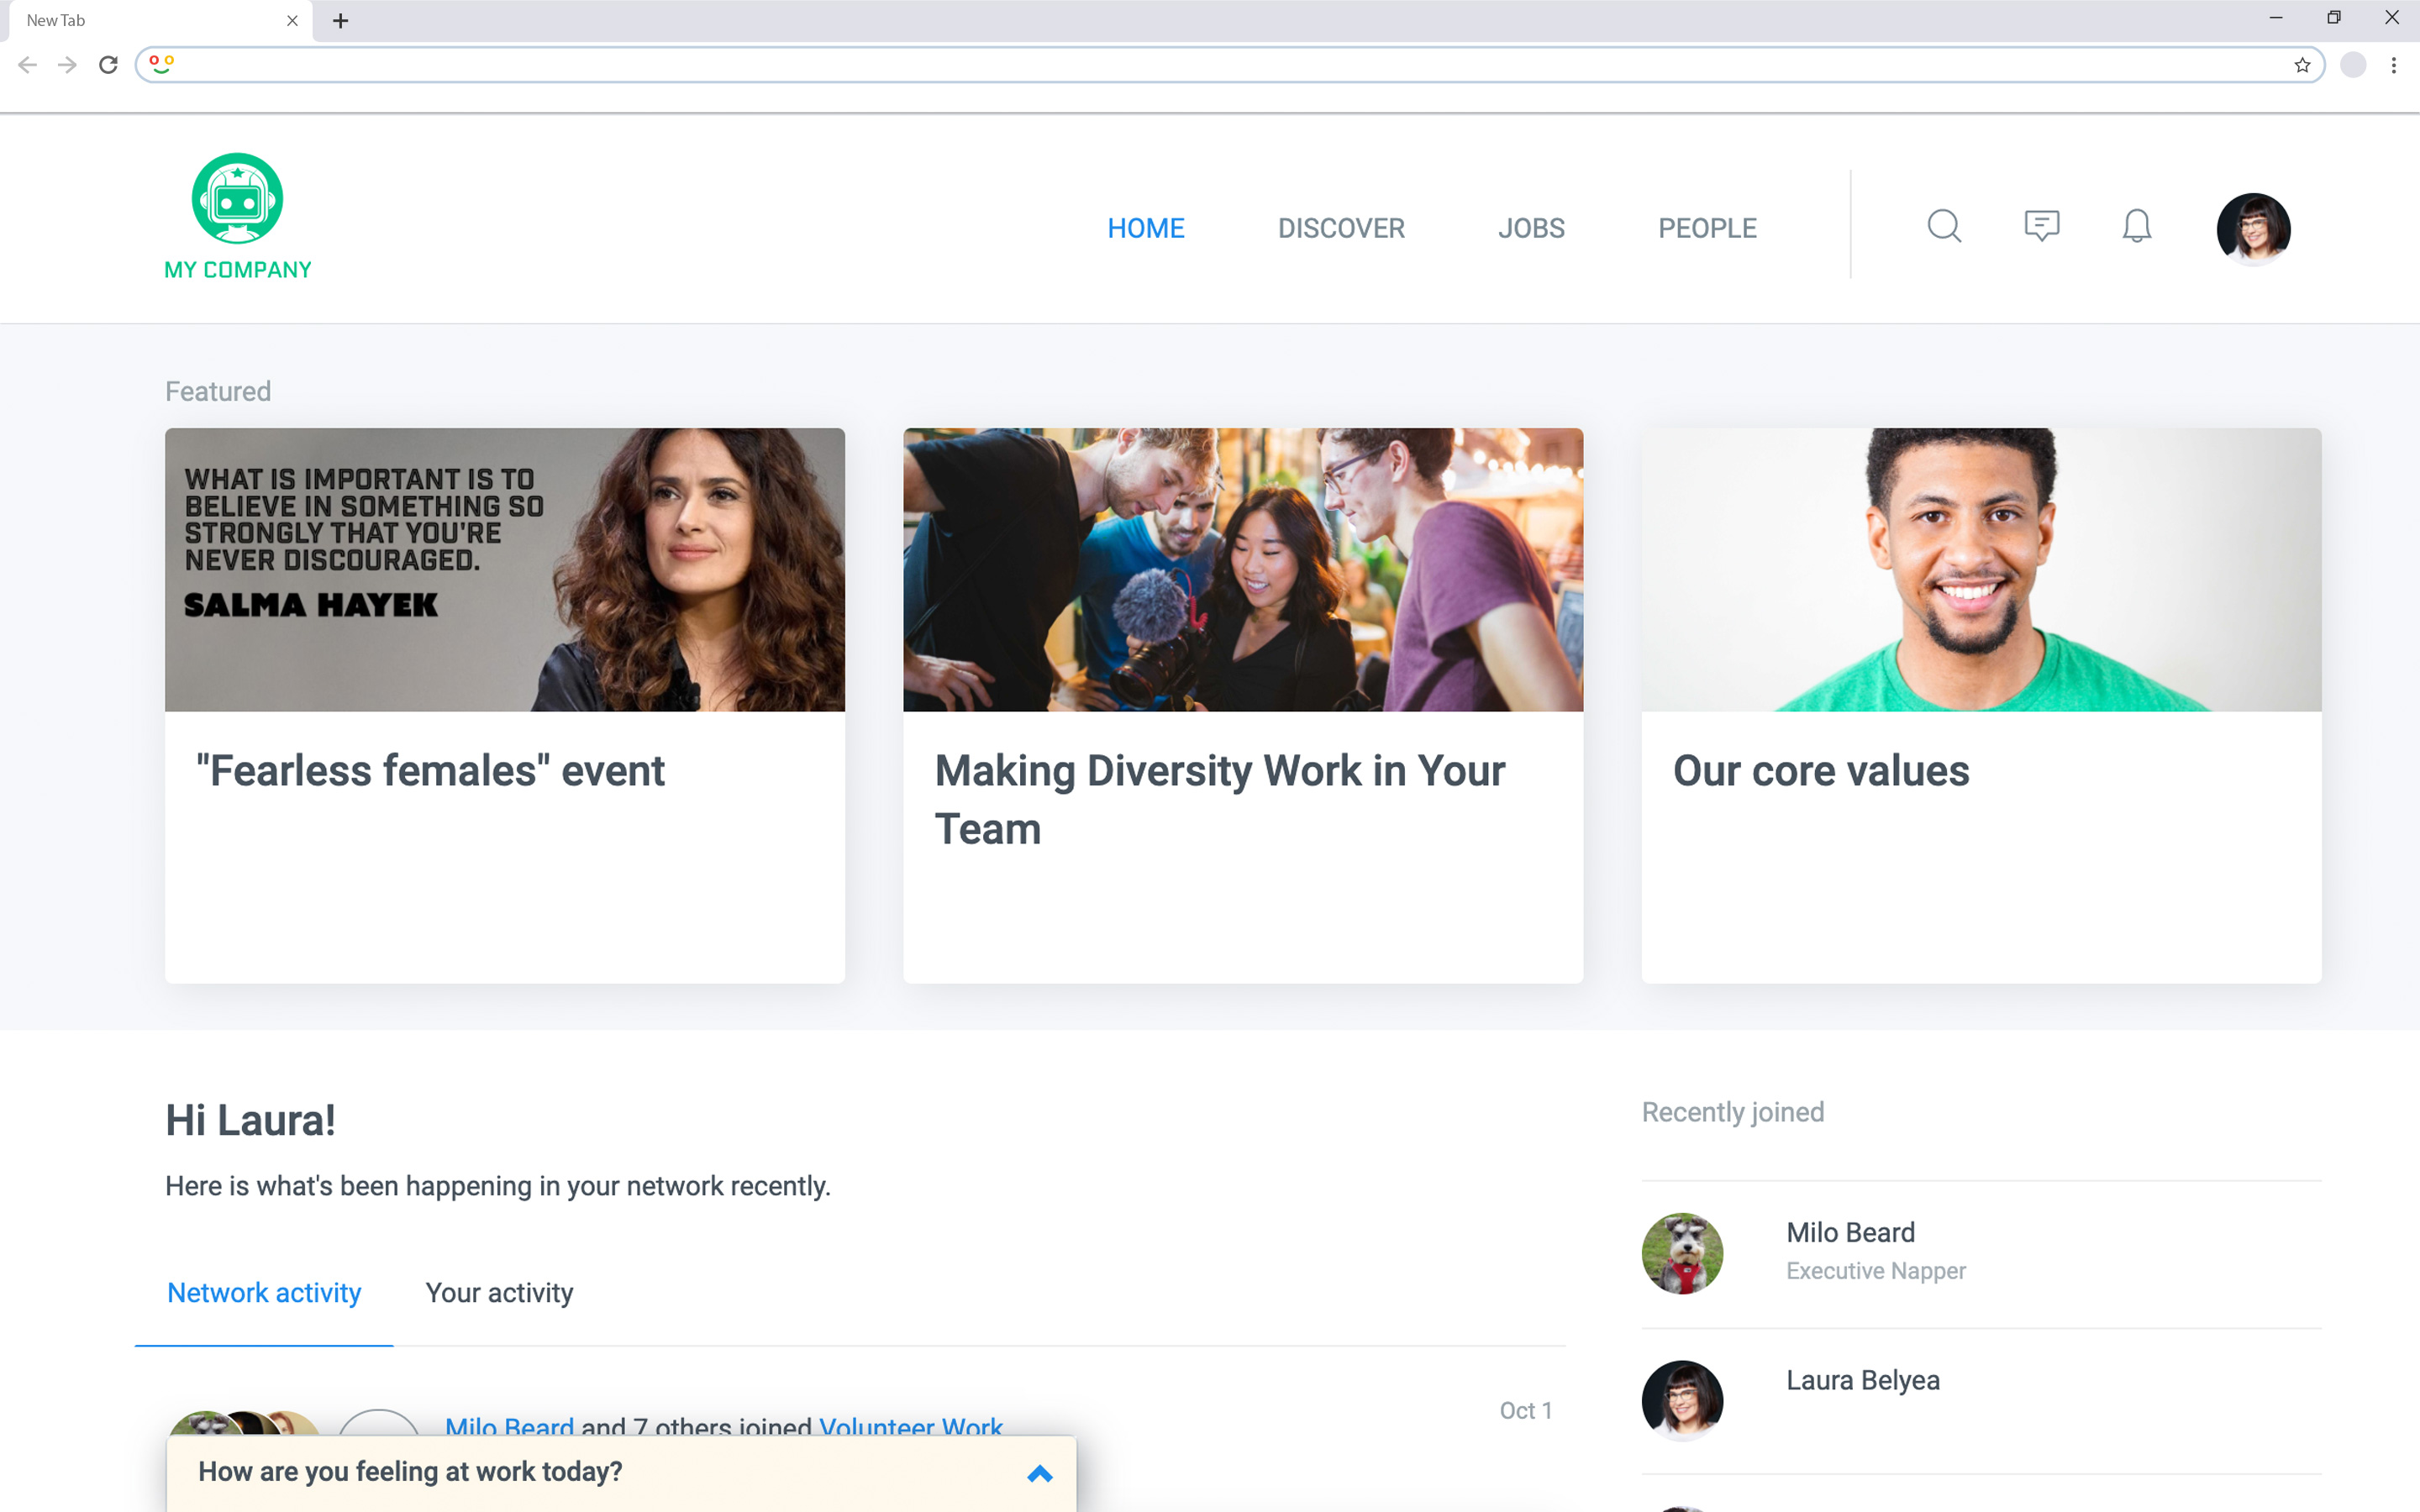 TaliVest - Your past employees, or their contacts, could be your next hires.